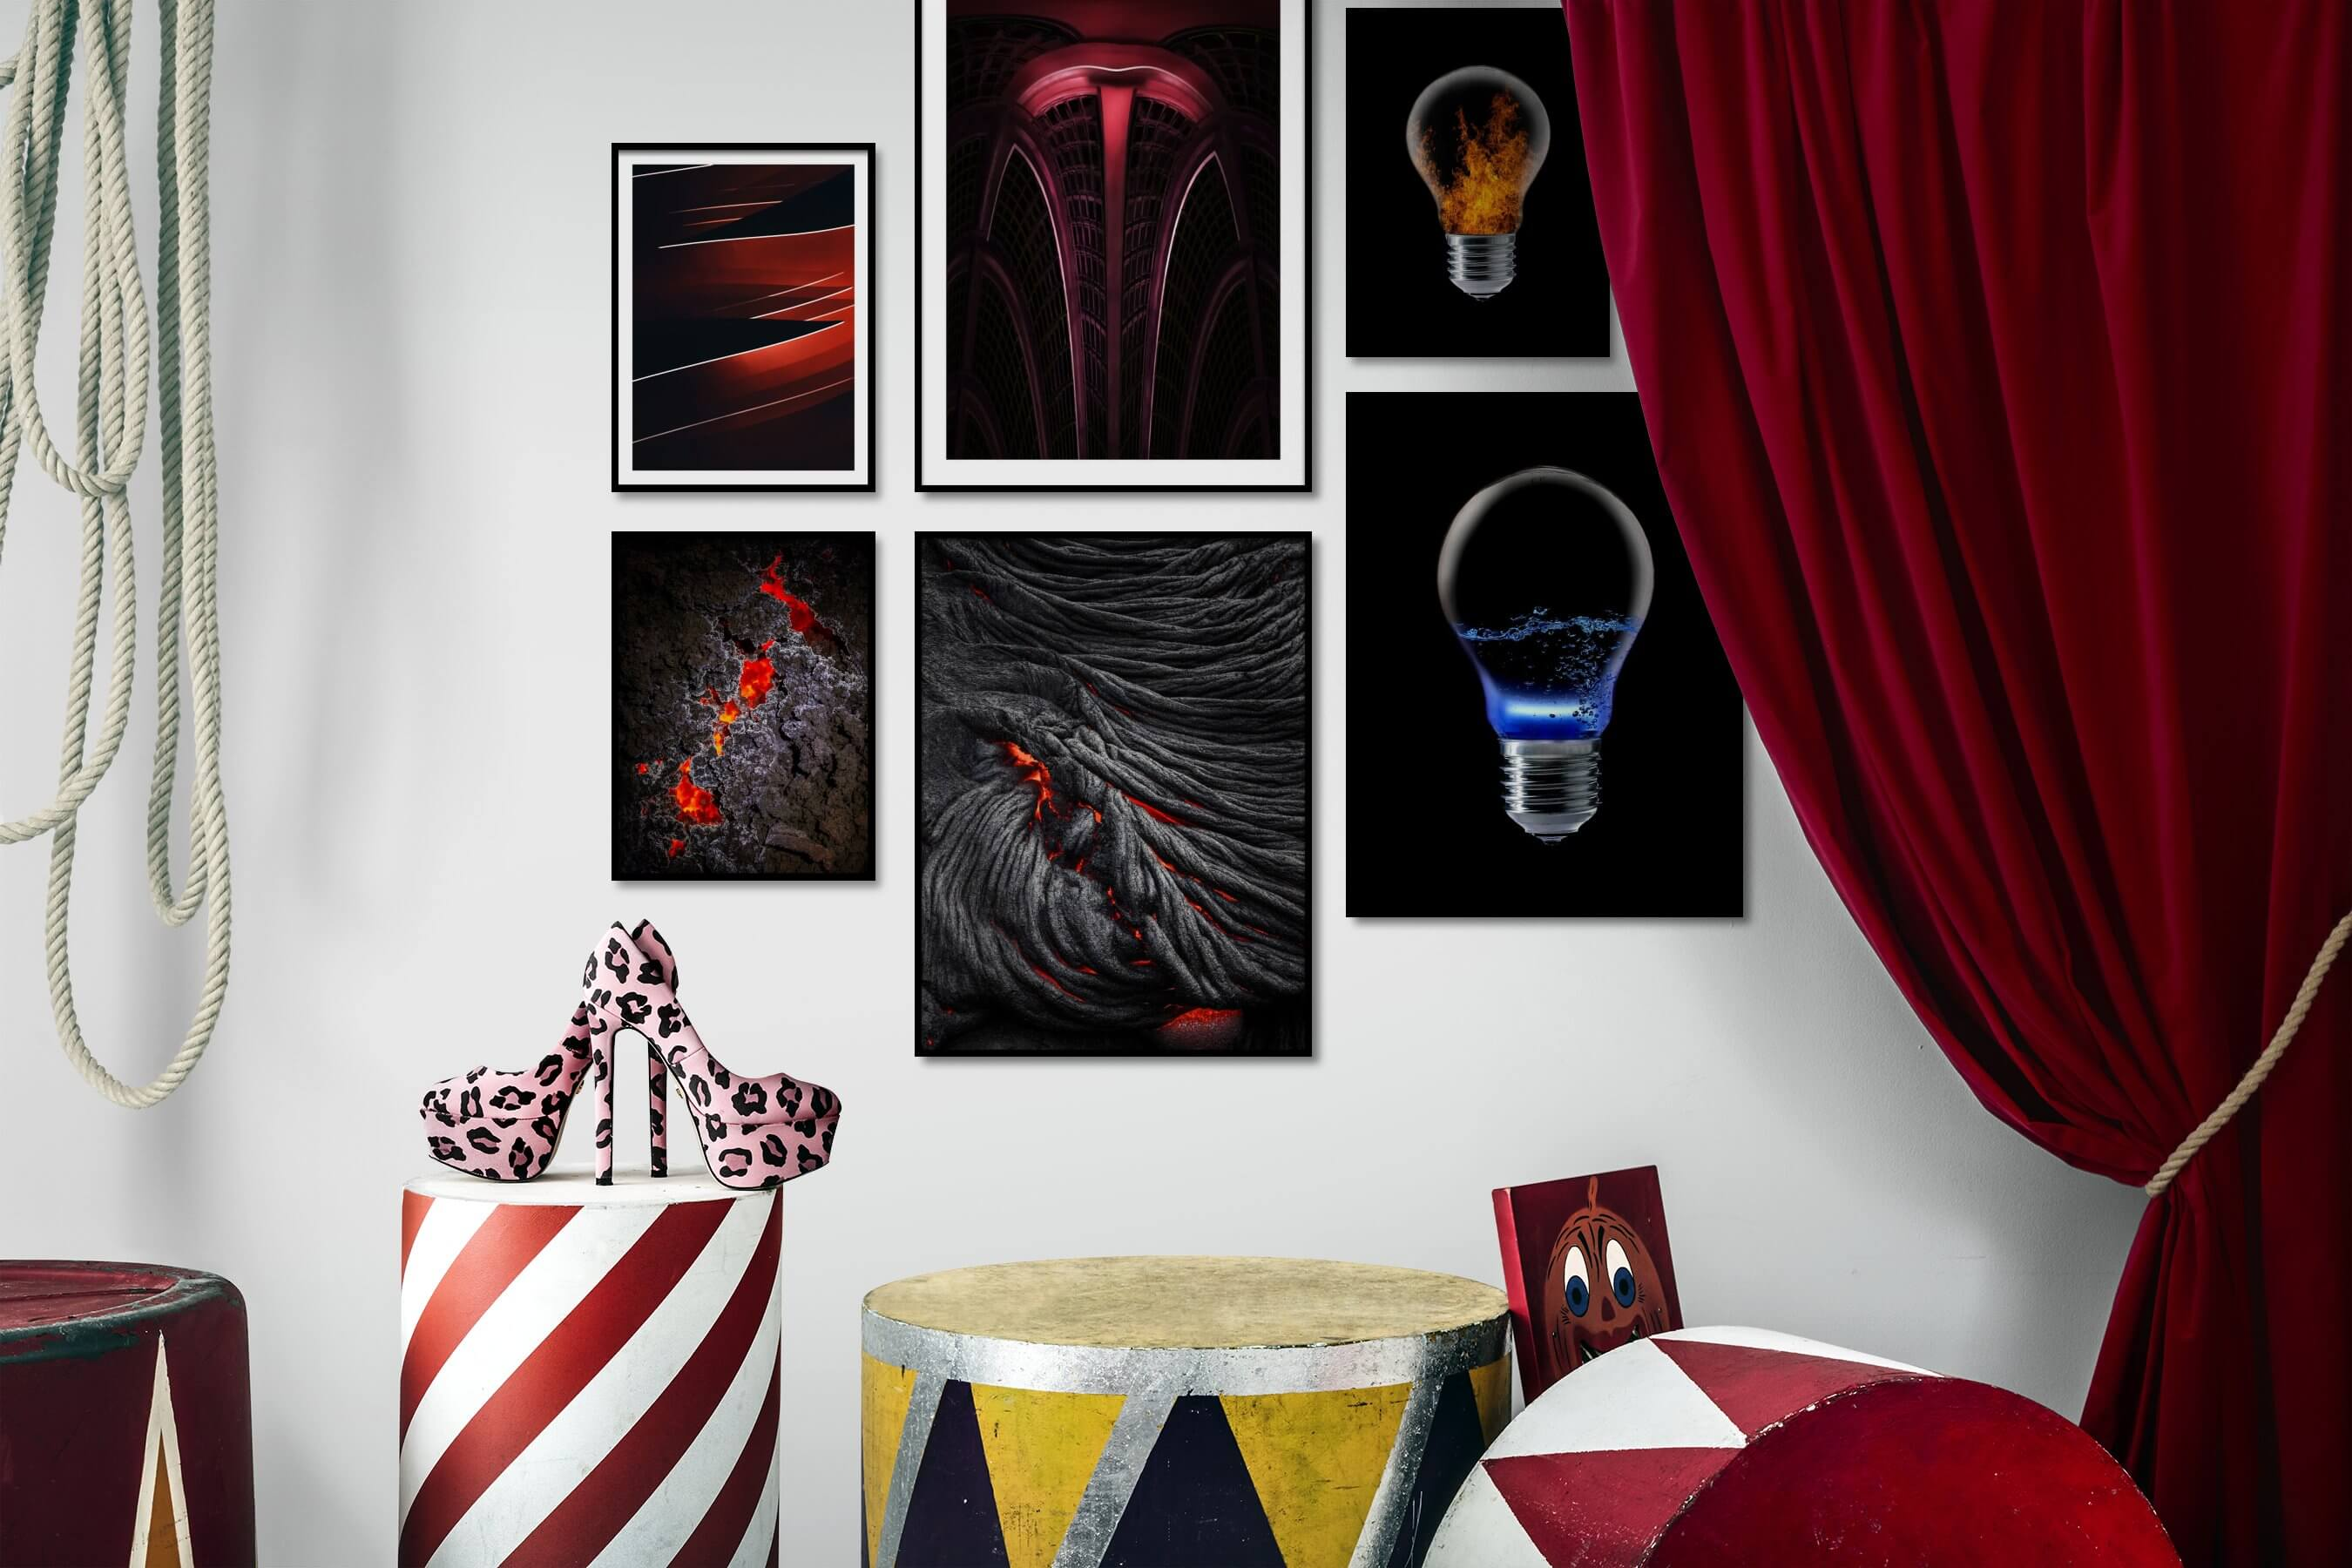 Gallery wall idea with six framed pictures arranged on a wall depicting For the Moderate, Nature, Dark Tones, and For the Minimalist